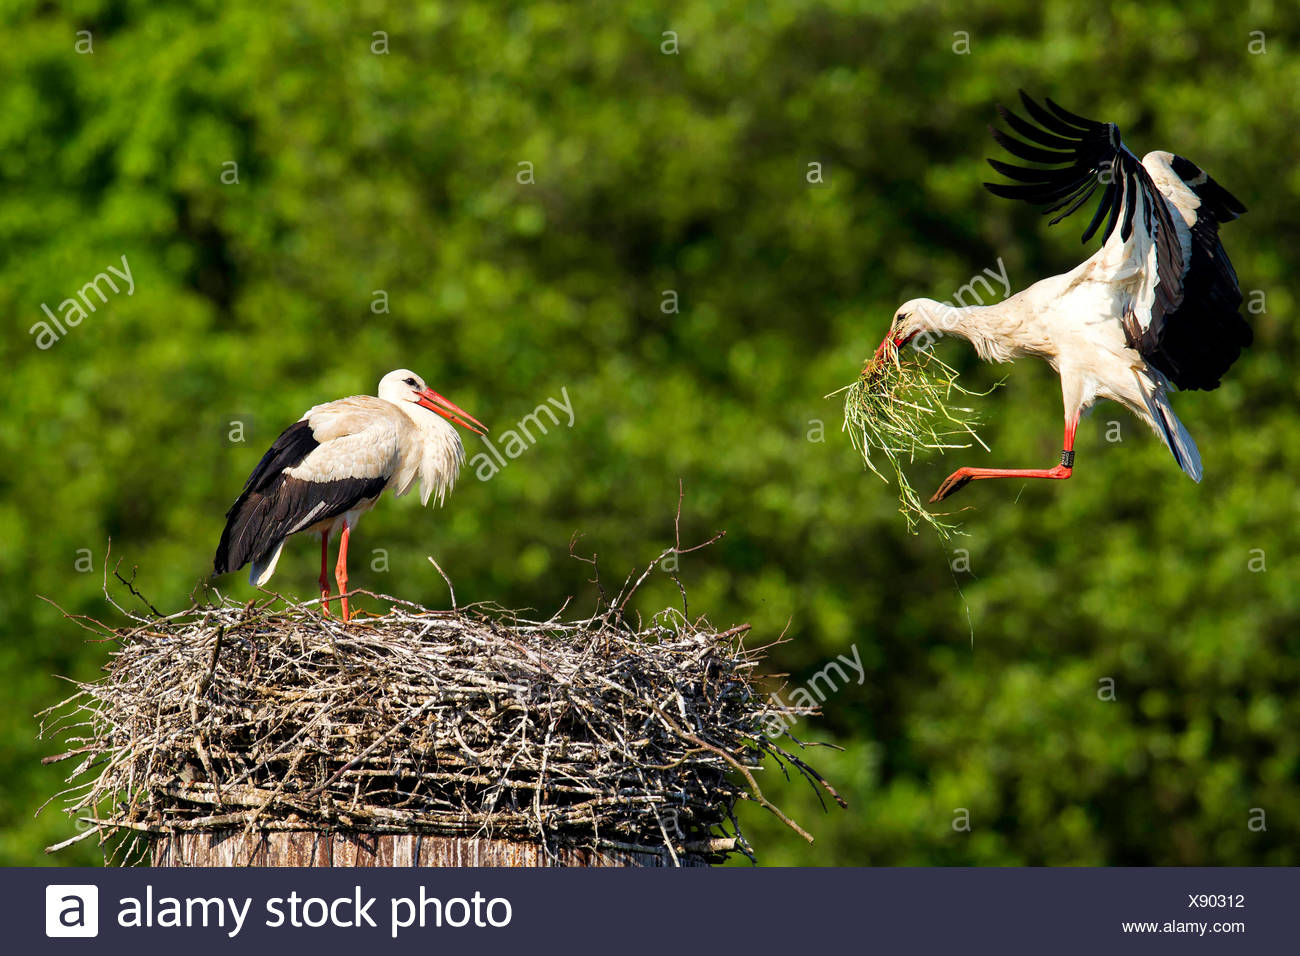 Waiting for the stork